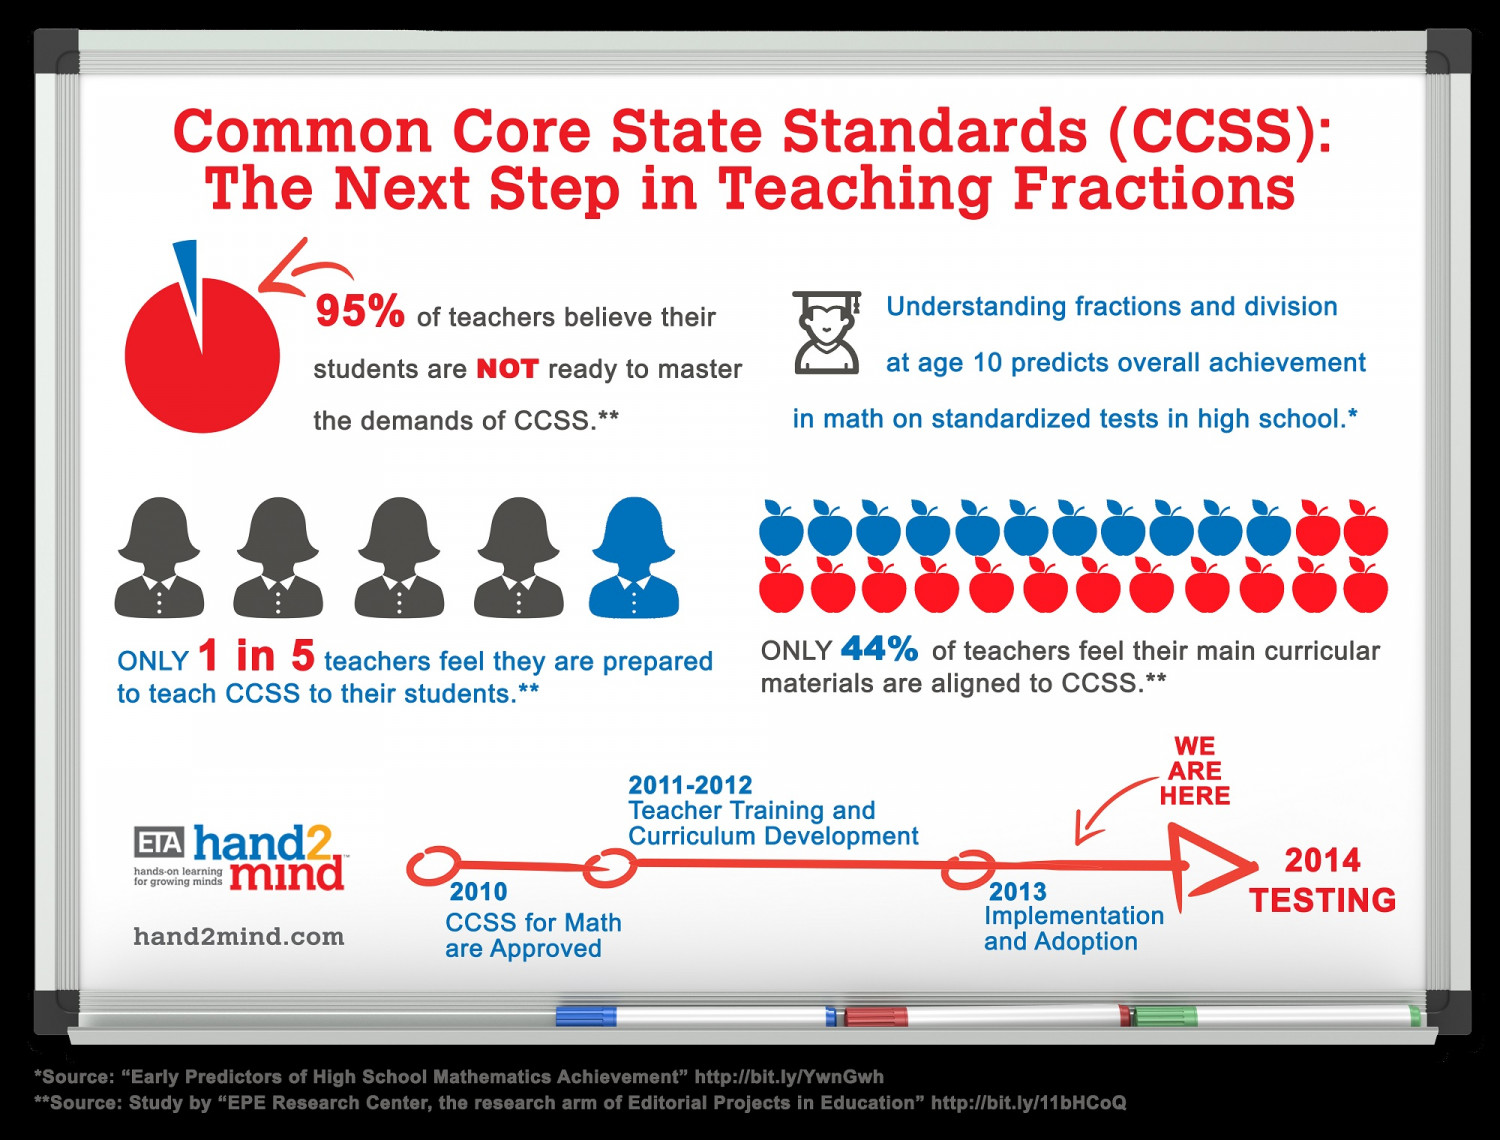 ETA hand2mind Common Core State Standards Fractions Infographic Infographic